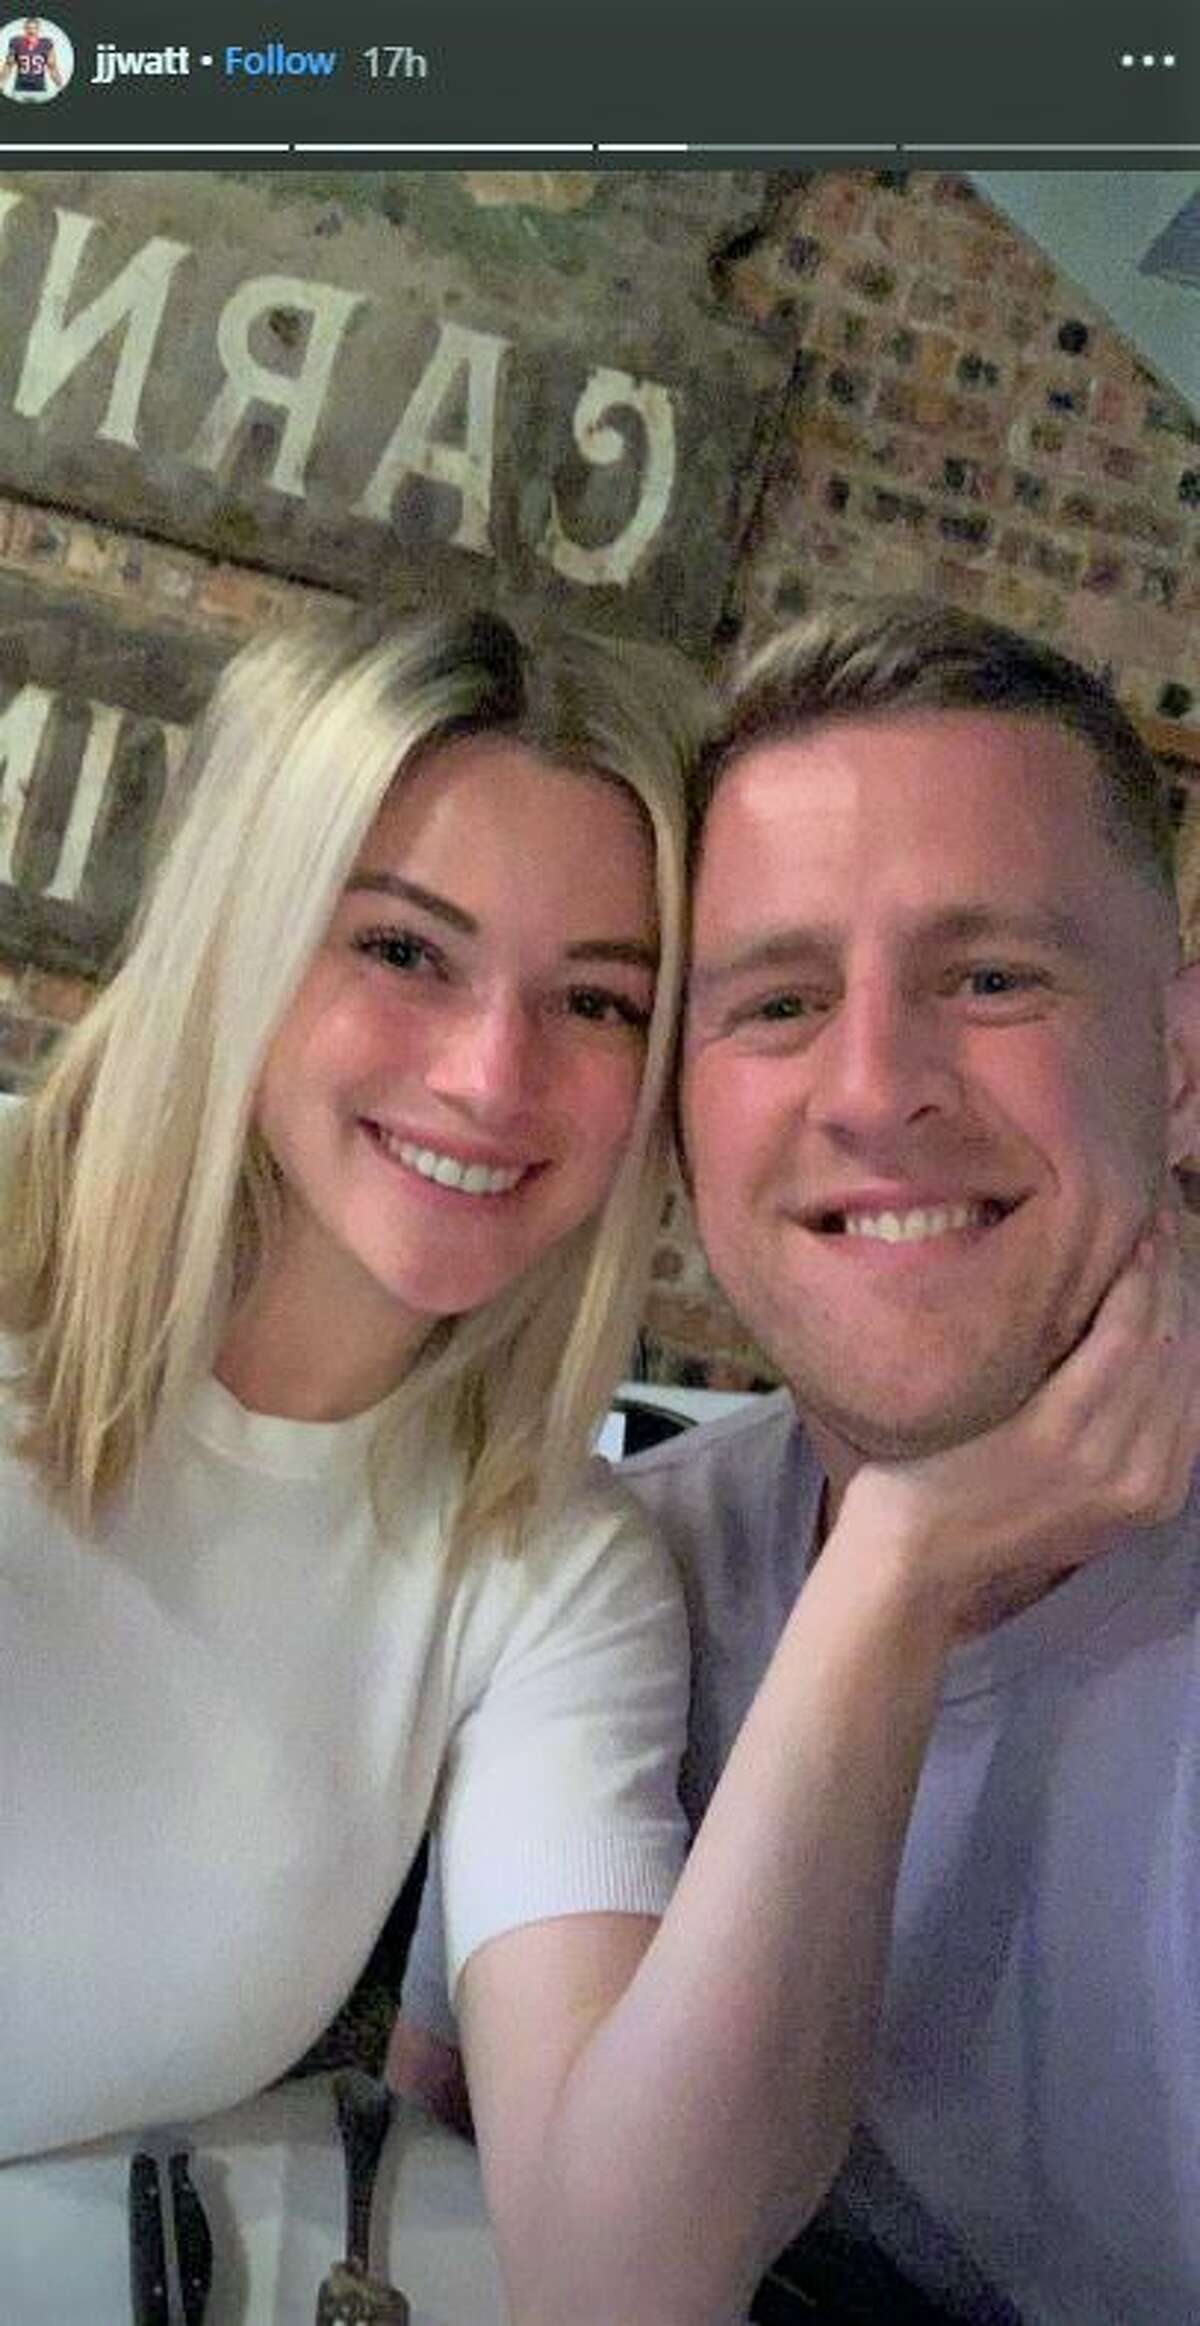 March 2019: J.J. Watt and Kealia OhaiTexans' star J.J. Watt and his girlfriend, Kealia Ohai, enjoyed a night out on the town at B&B Restaurant and Butchers. RELATED: J.J. Watt and Kealia Ohai enjoy romantic date night at B&B Butchers & Restaurant